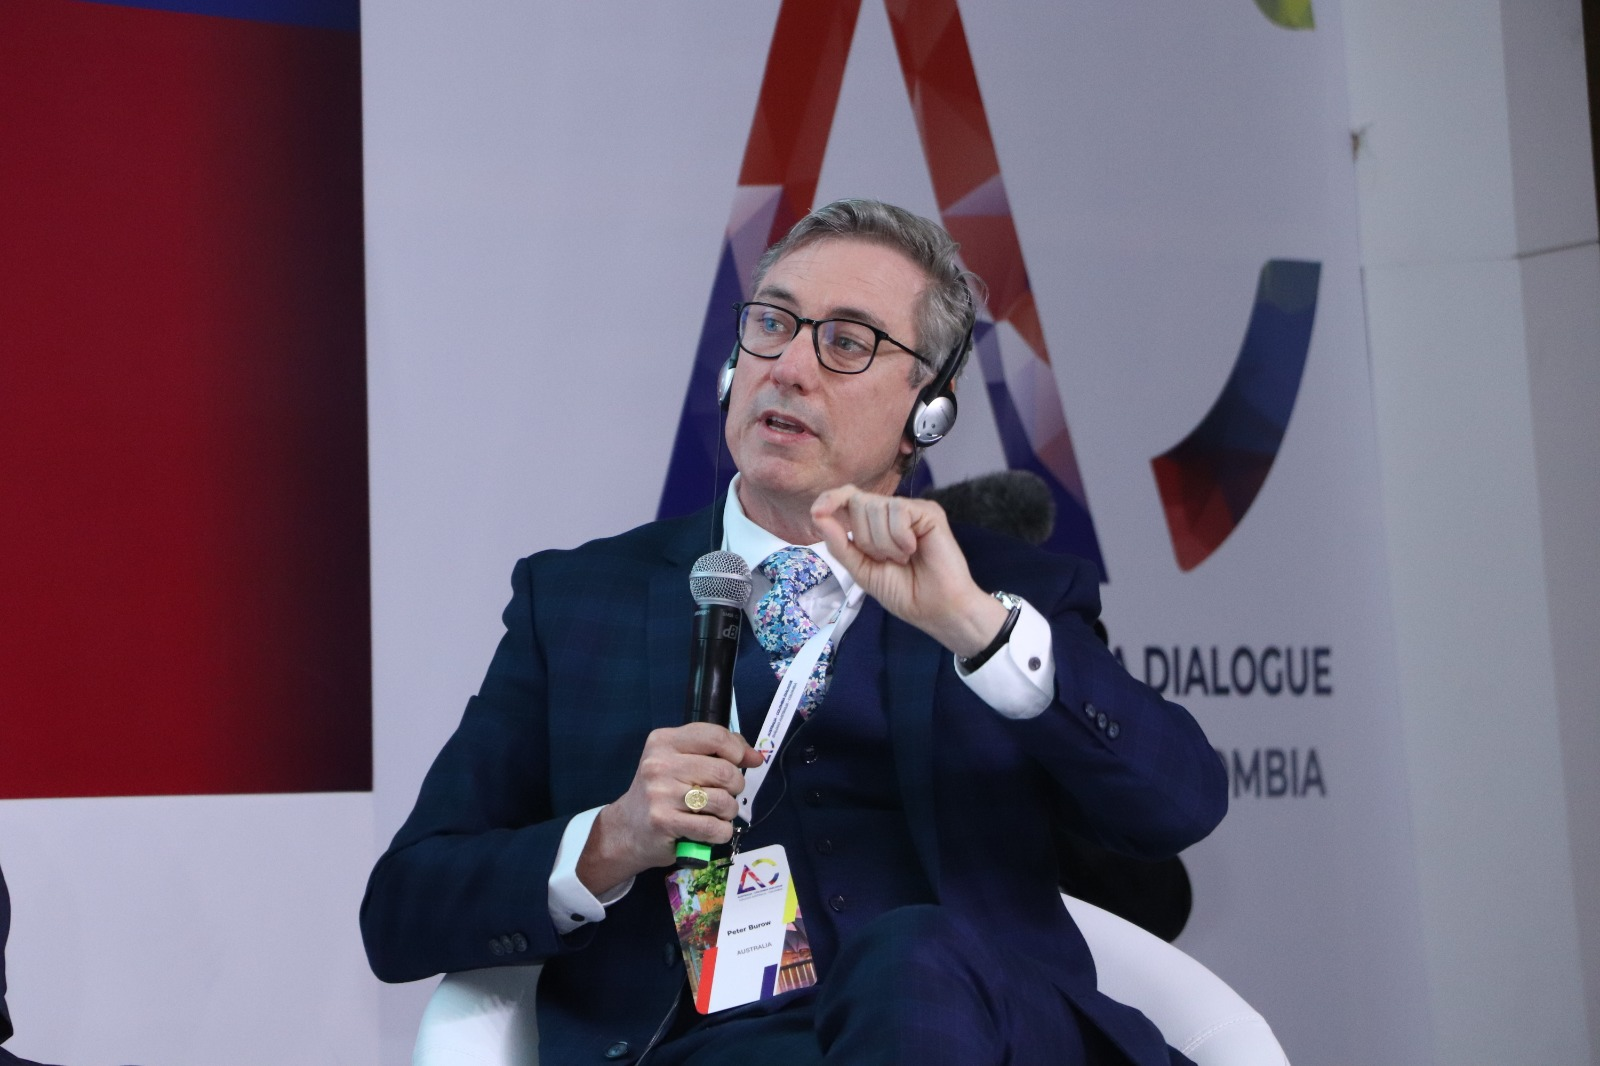 Bogotá, Colombia   Peter explores the role of trust, through the lens of neuroscience, in building strong commercial links between Australia and Colombia at the first Colombia - Australia dialogue in Bogotá in  June 2019